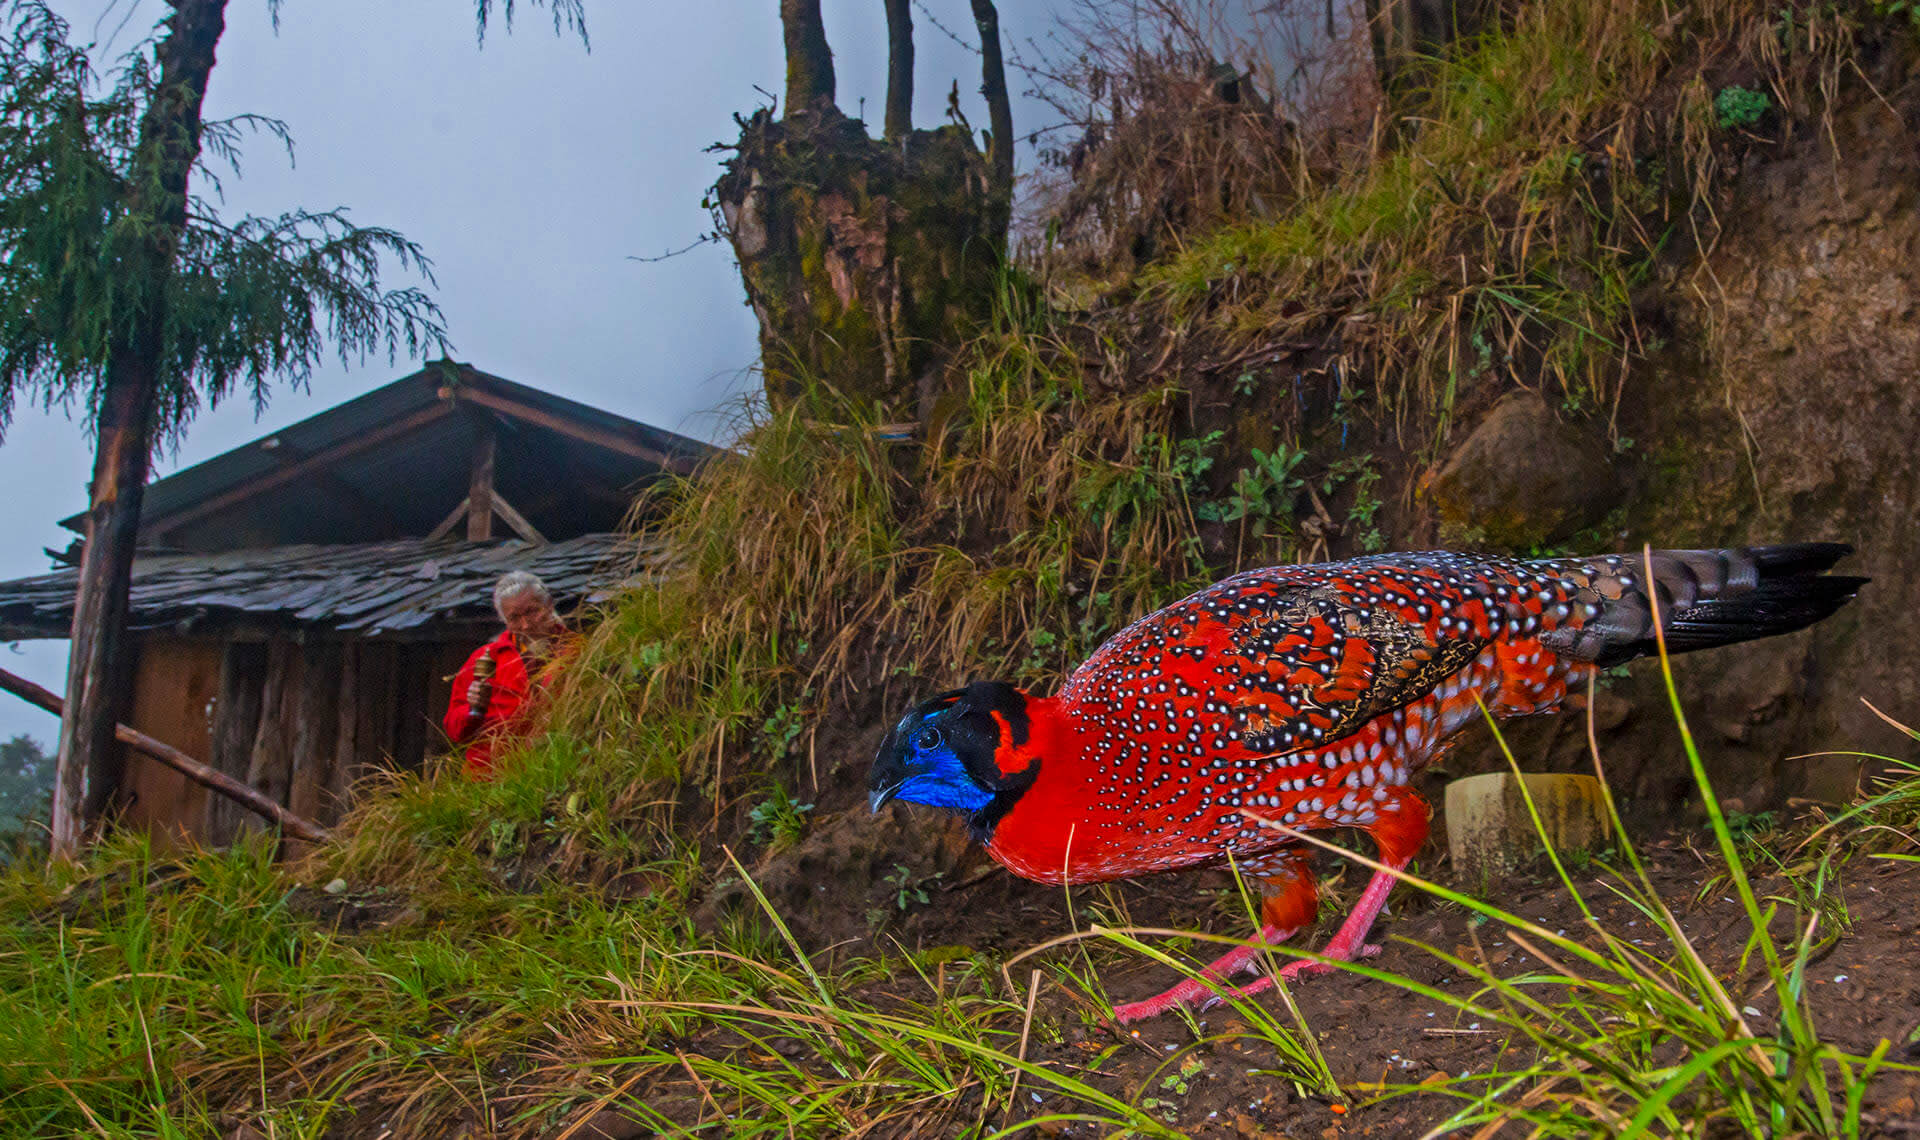 Male satyr tragopans are brightly coloured birds, with a bright blue patch near the throat. This is called the wattle, and is a morphological feature exhibited by many male members of the order Galliformes, including roosters. The birds would visit this house in Punakha most mornings and evenings, hang around for an hour or so, and then return to the rhododendron thickets around.